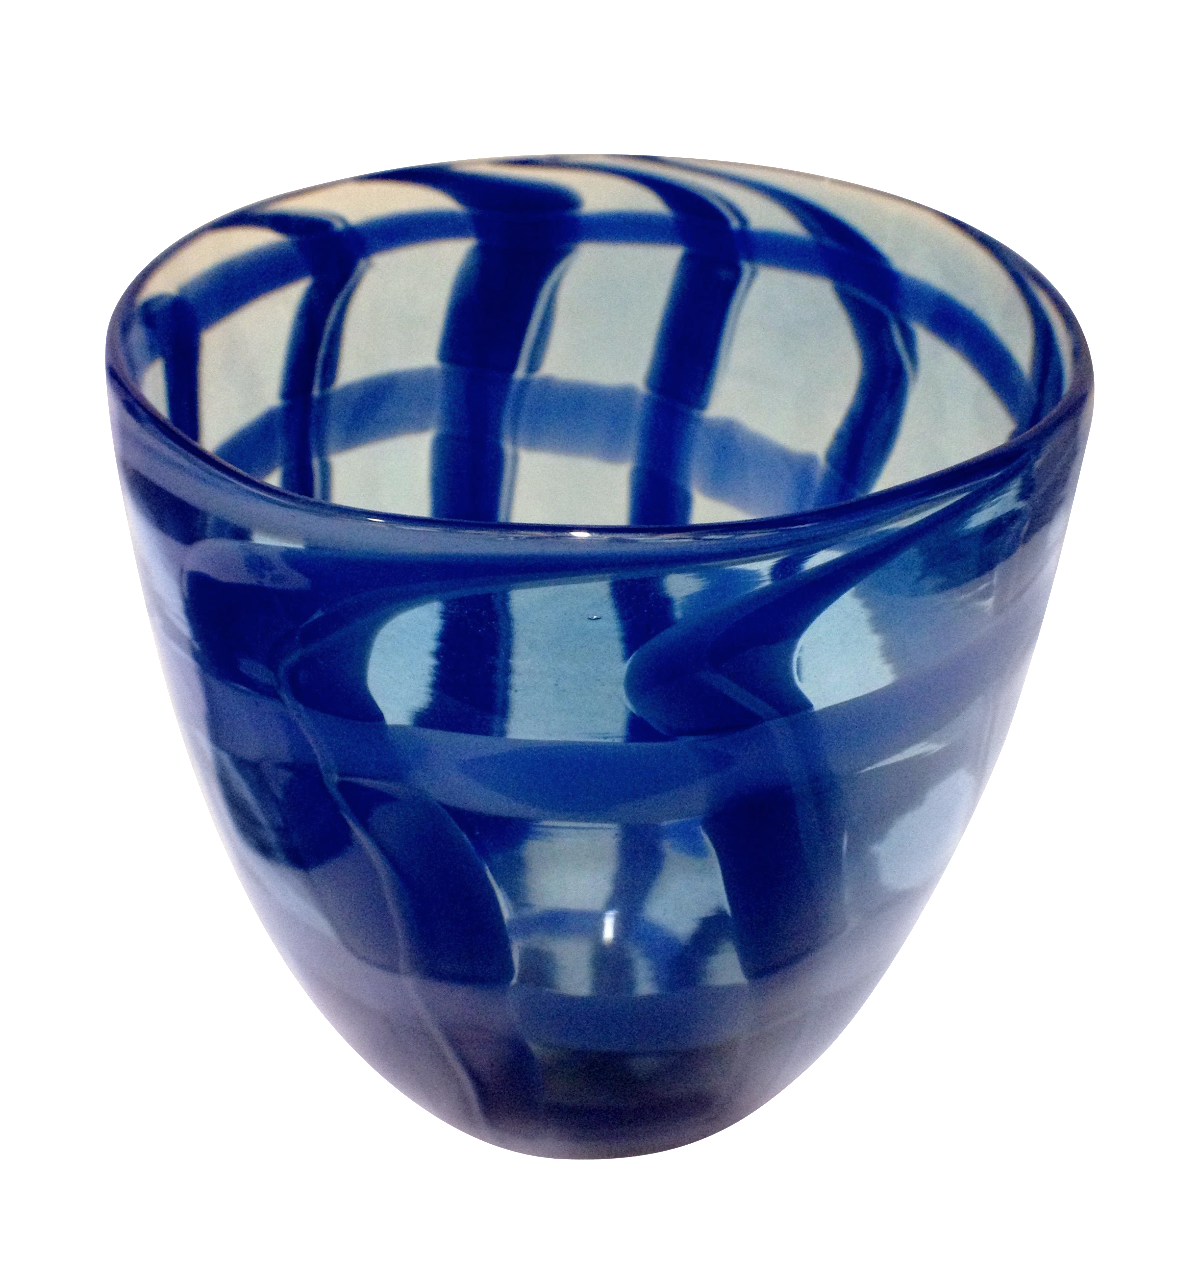 Reticello style hand blown art glass vase chairish for Kitchen cabinet trends 2018 combined with hand blown glass wall art